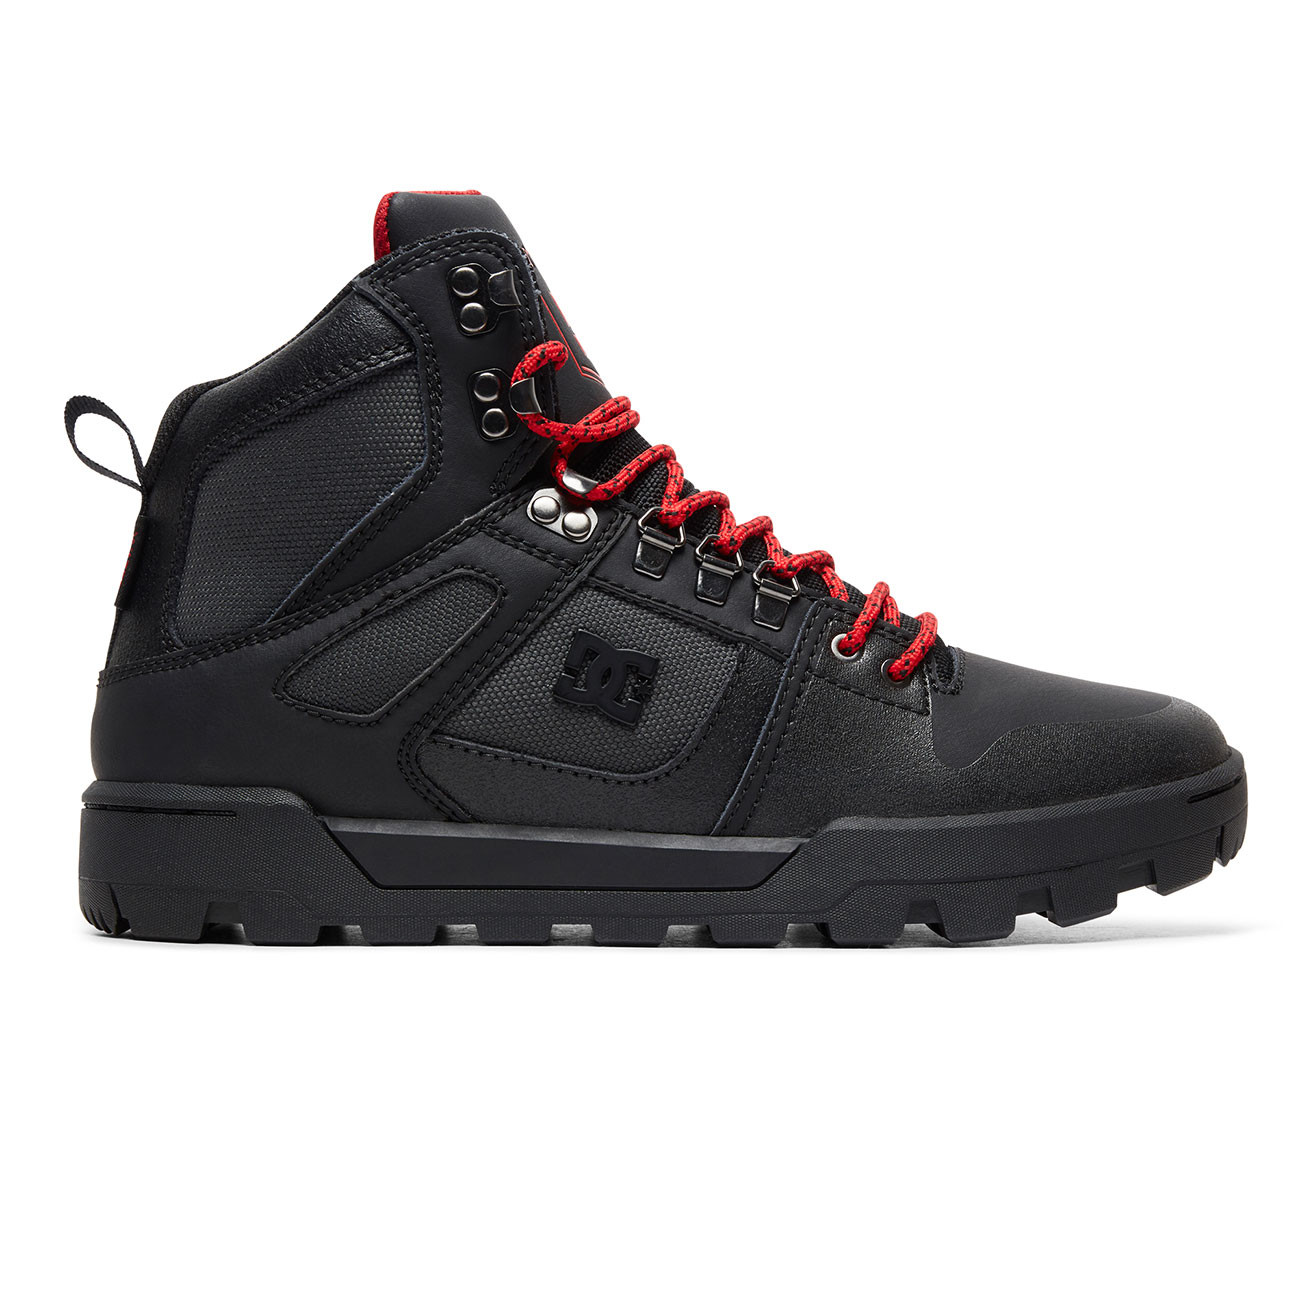 Zimní boty DC Pure High-Top WR black grey red  5b2be04a3a